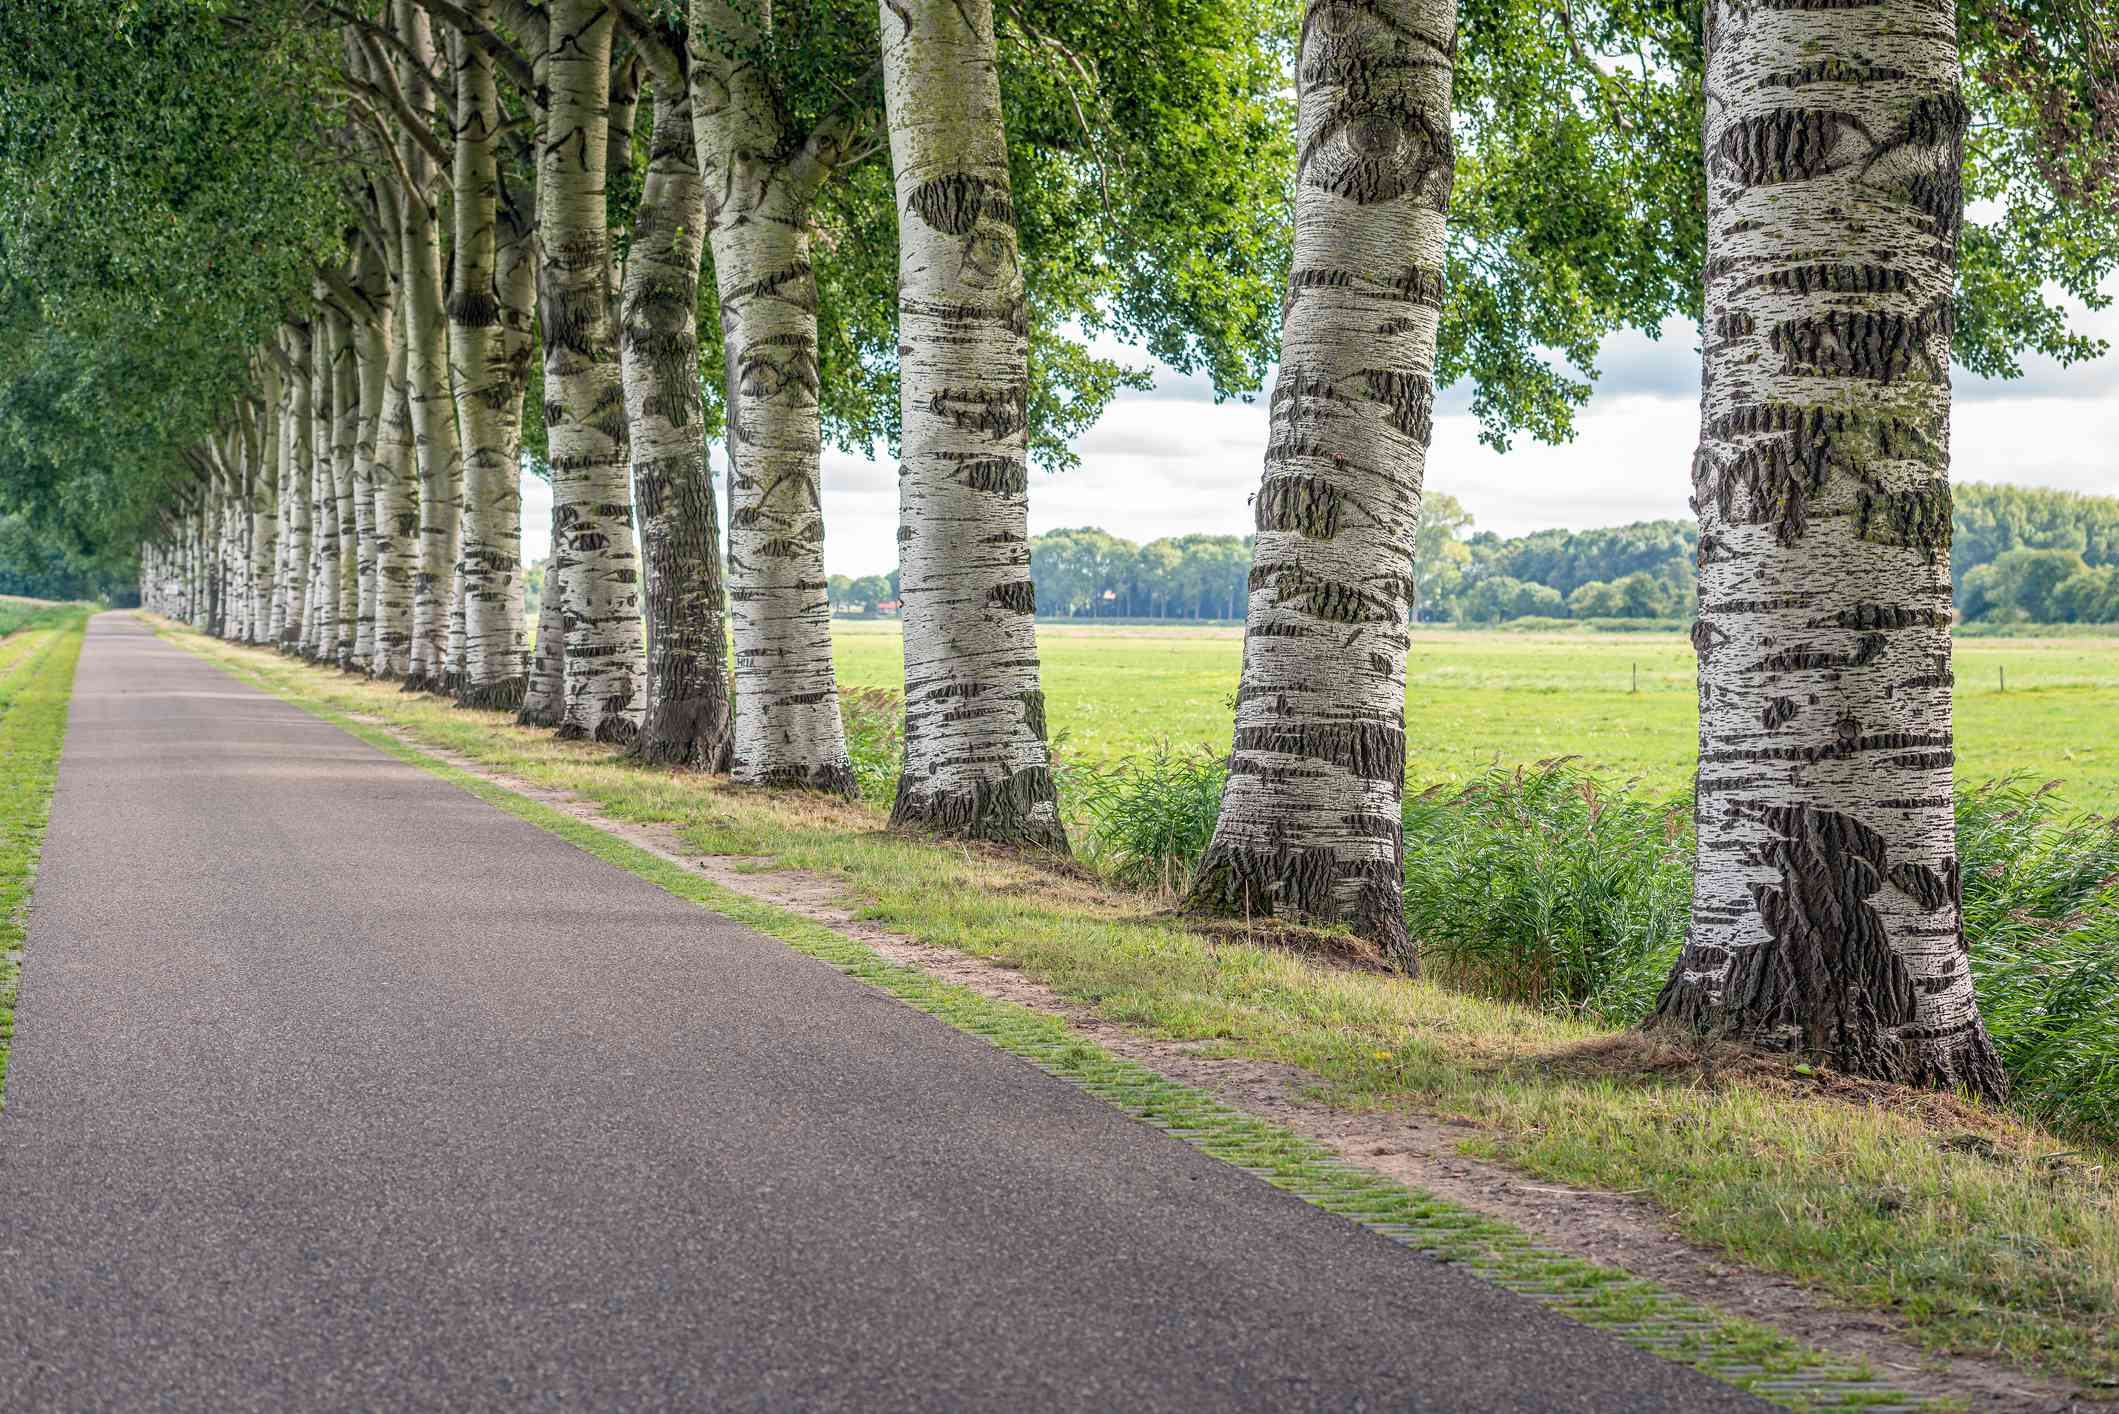 Seemingly endless line of Grey Poplars lining road in the Netherlands